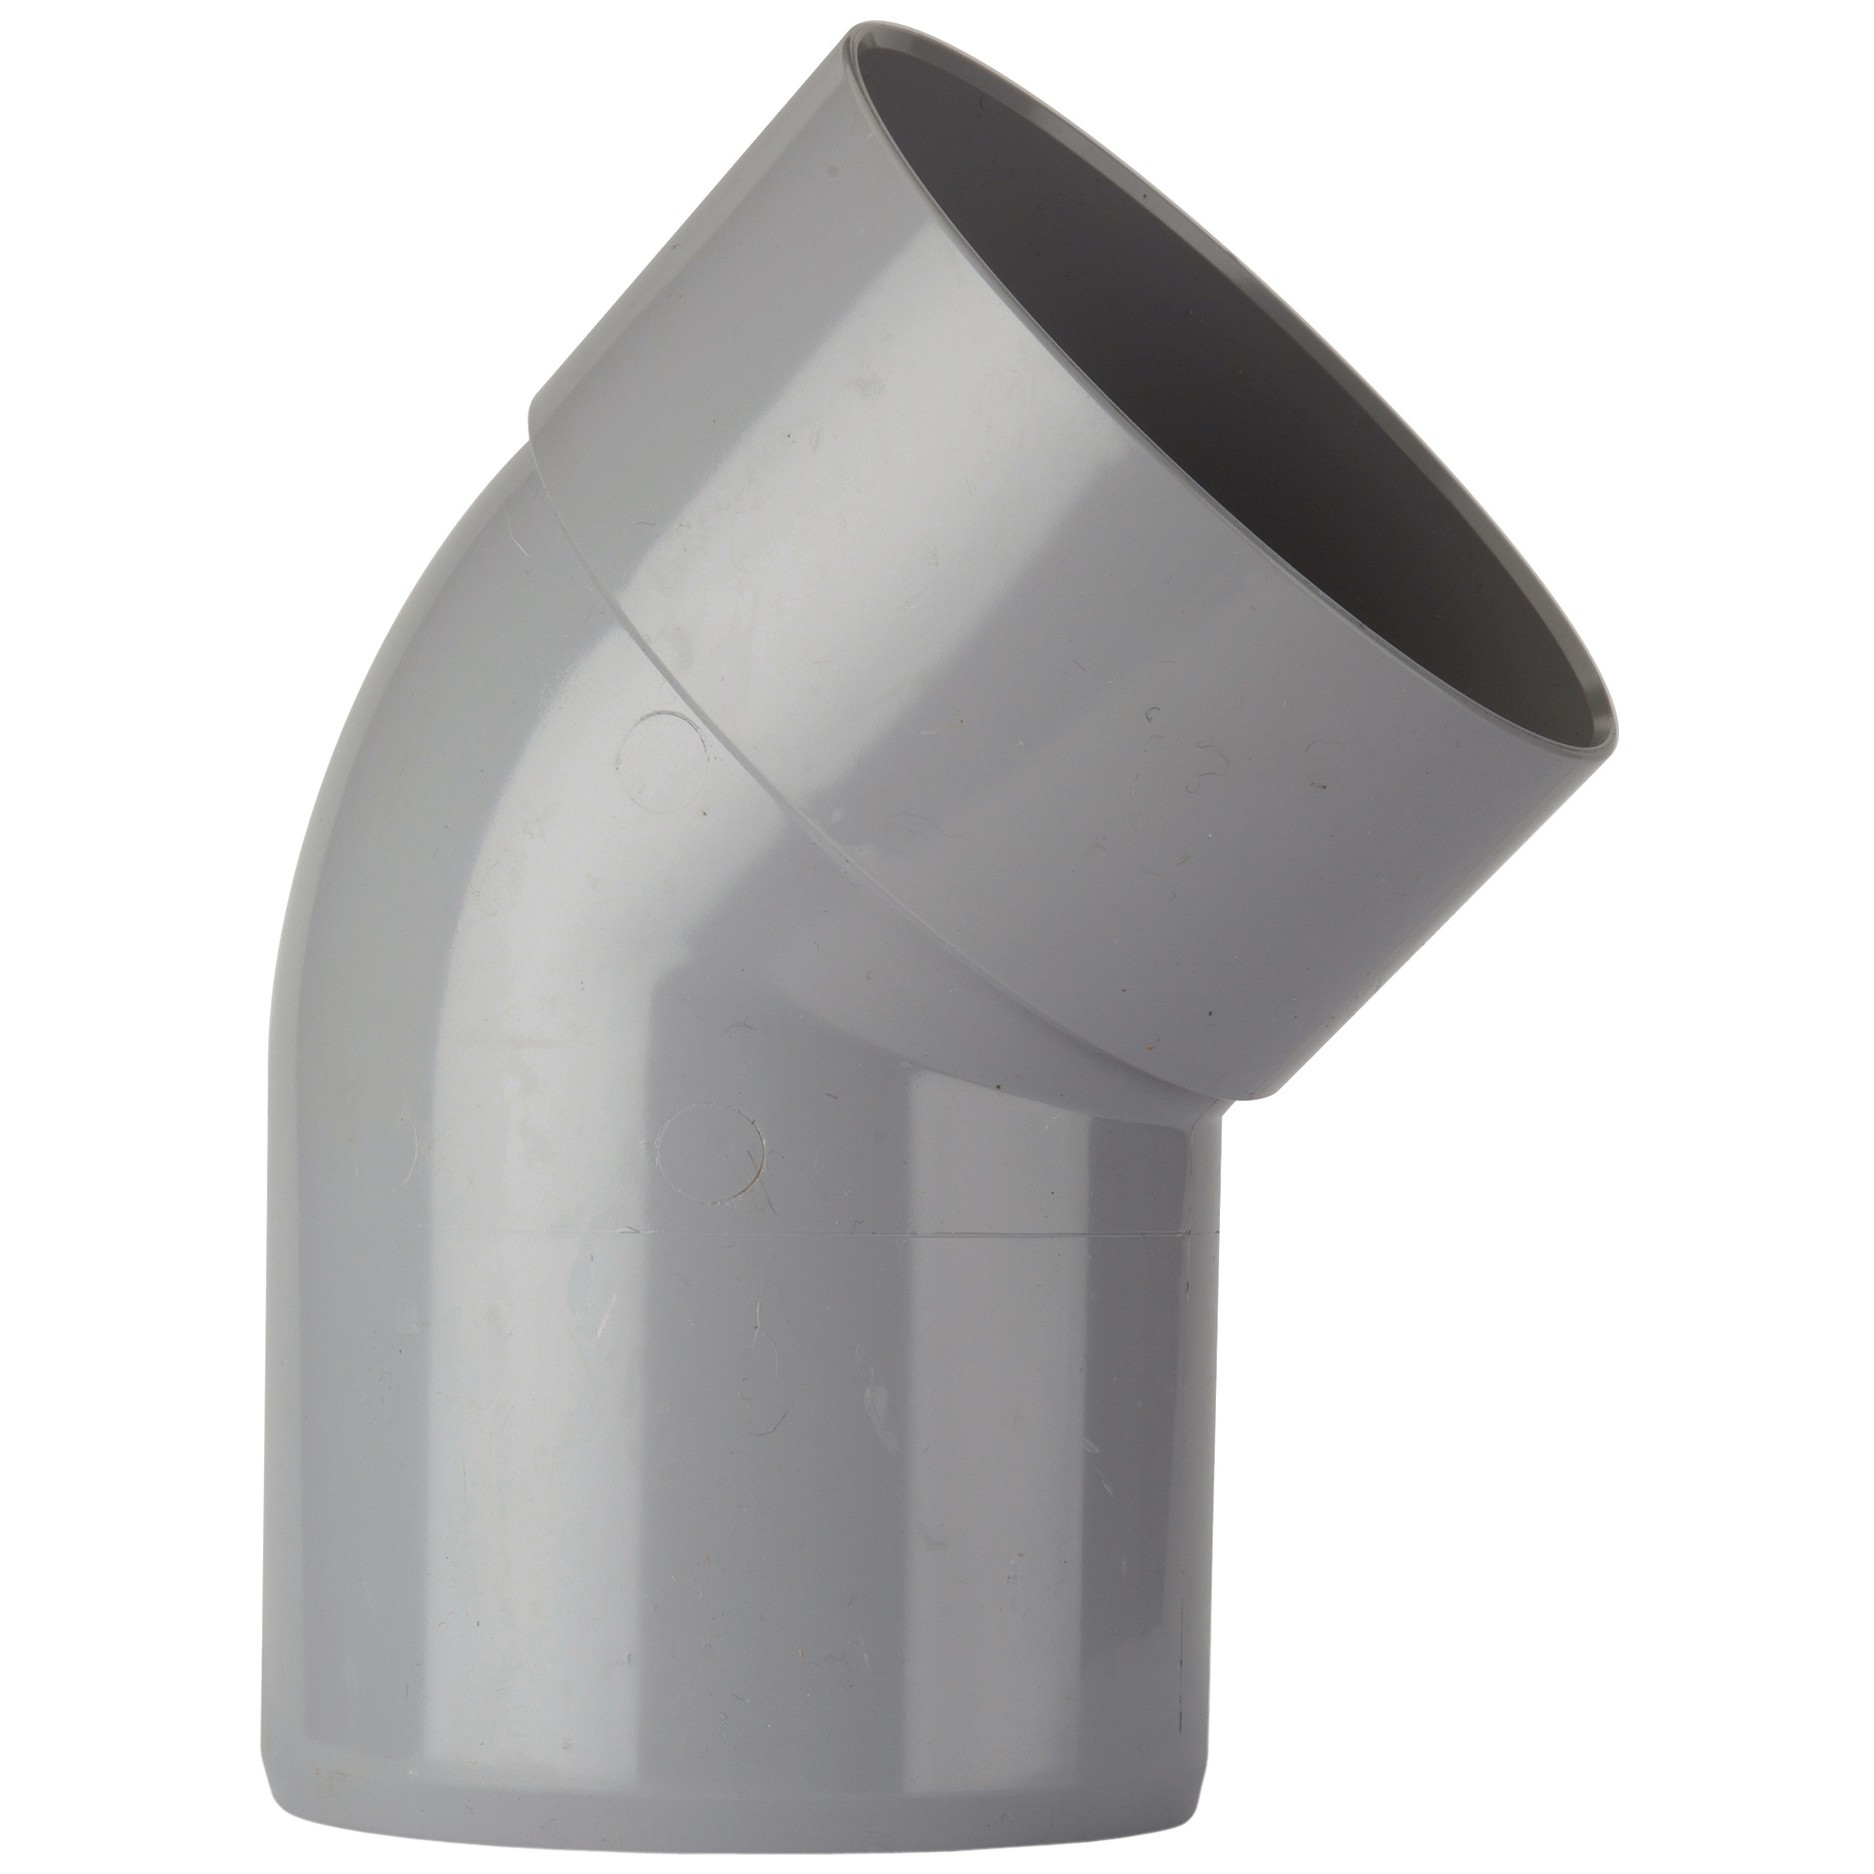 Polypipe 82mm Soil Single Socket 135 Degree Offset Bend - Grey